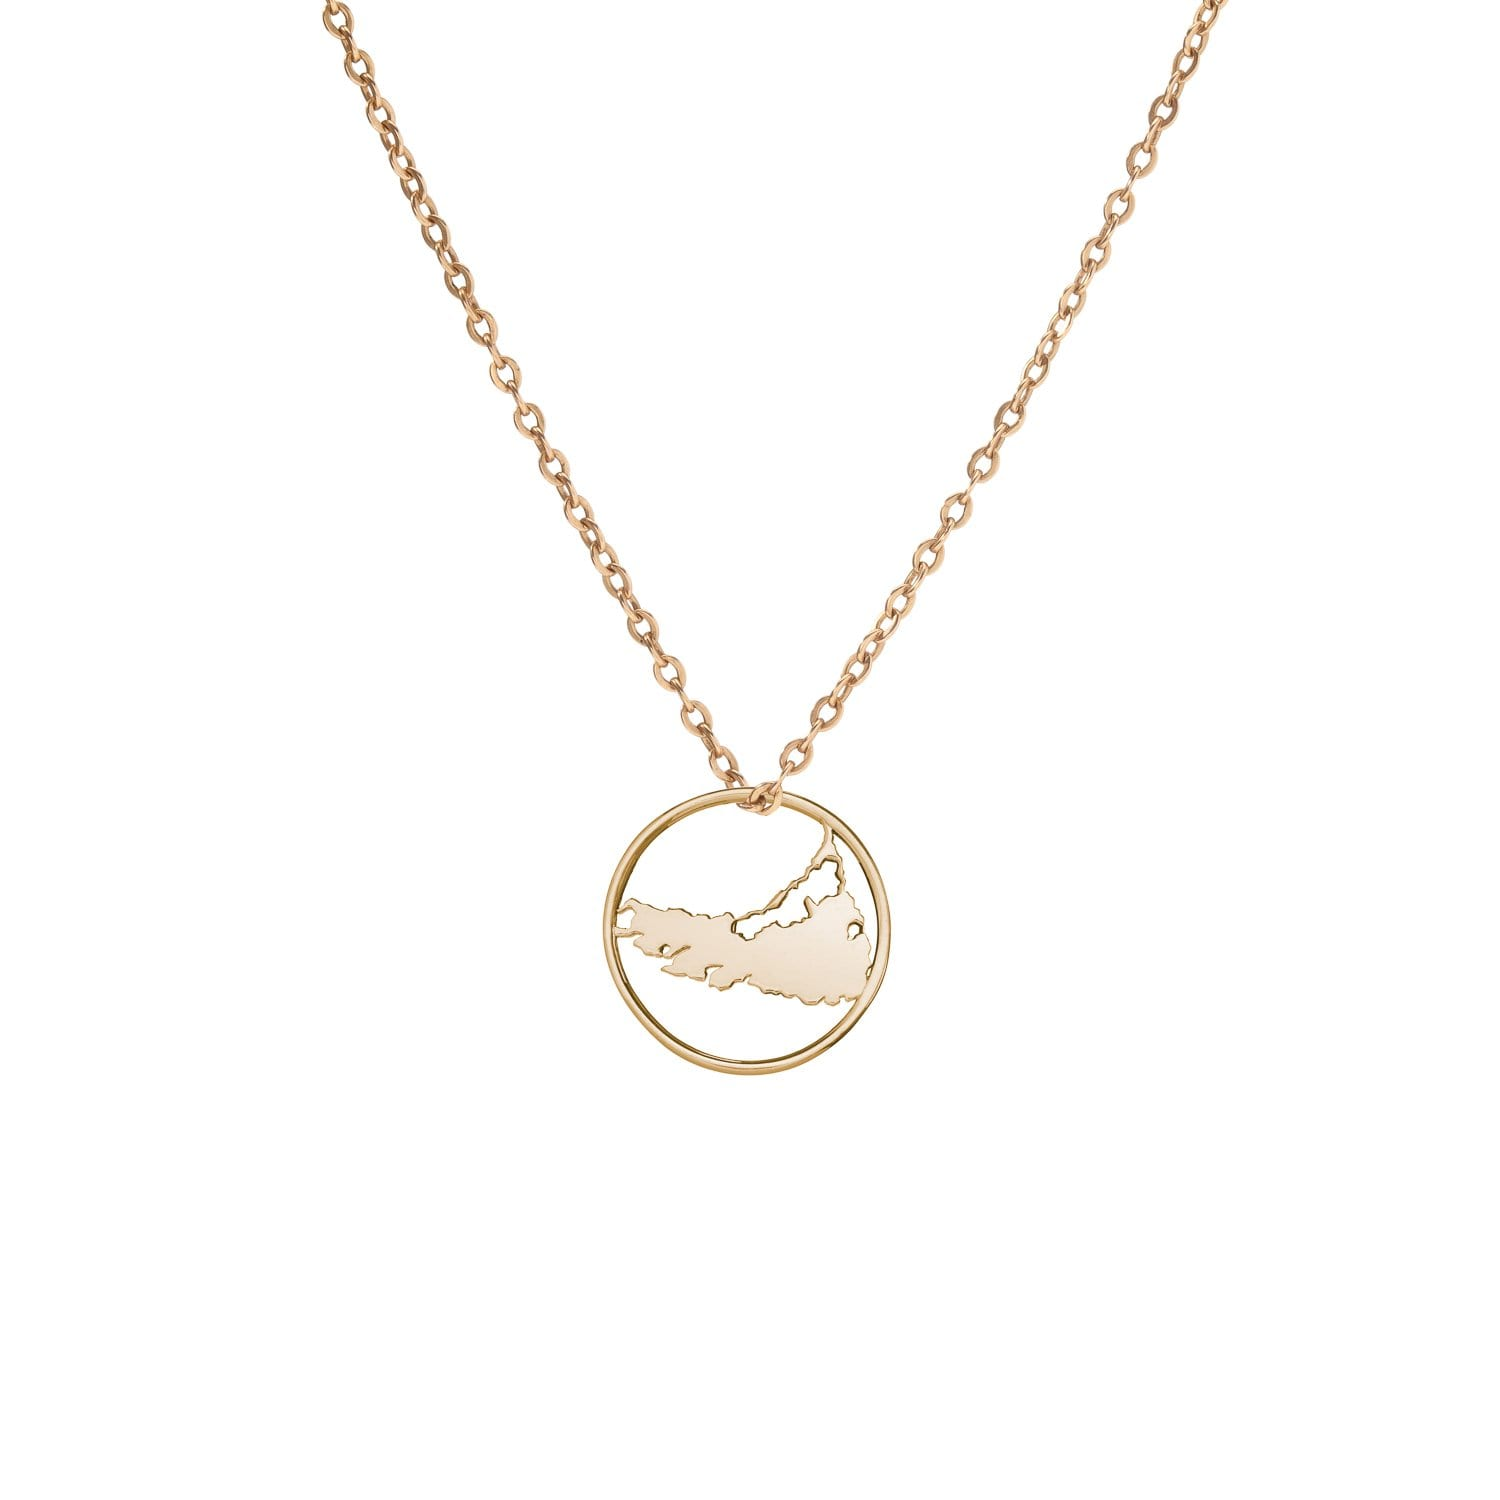 Vincents Fine Jewelry | Catherine Demarchelier | Nantucket Chained Necklace | CD Charms